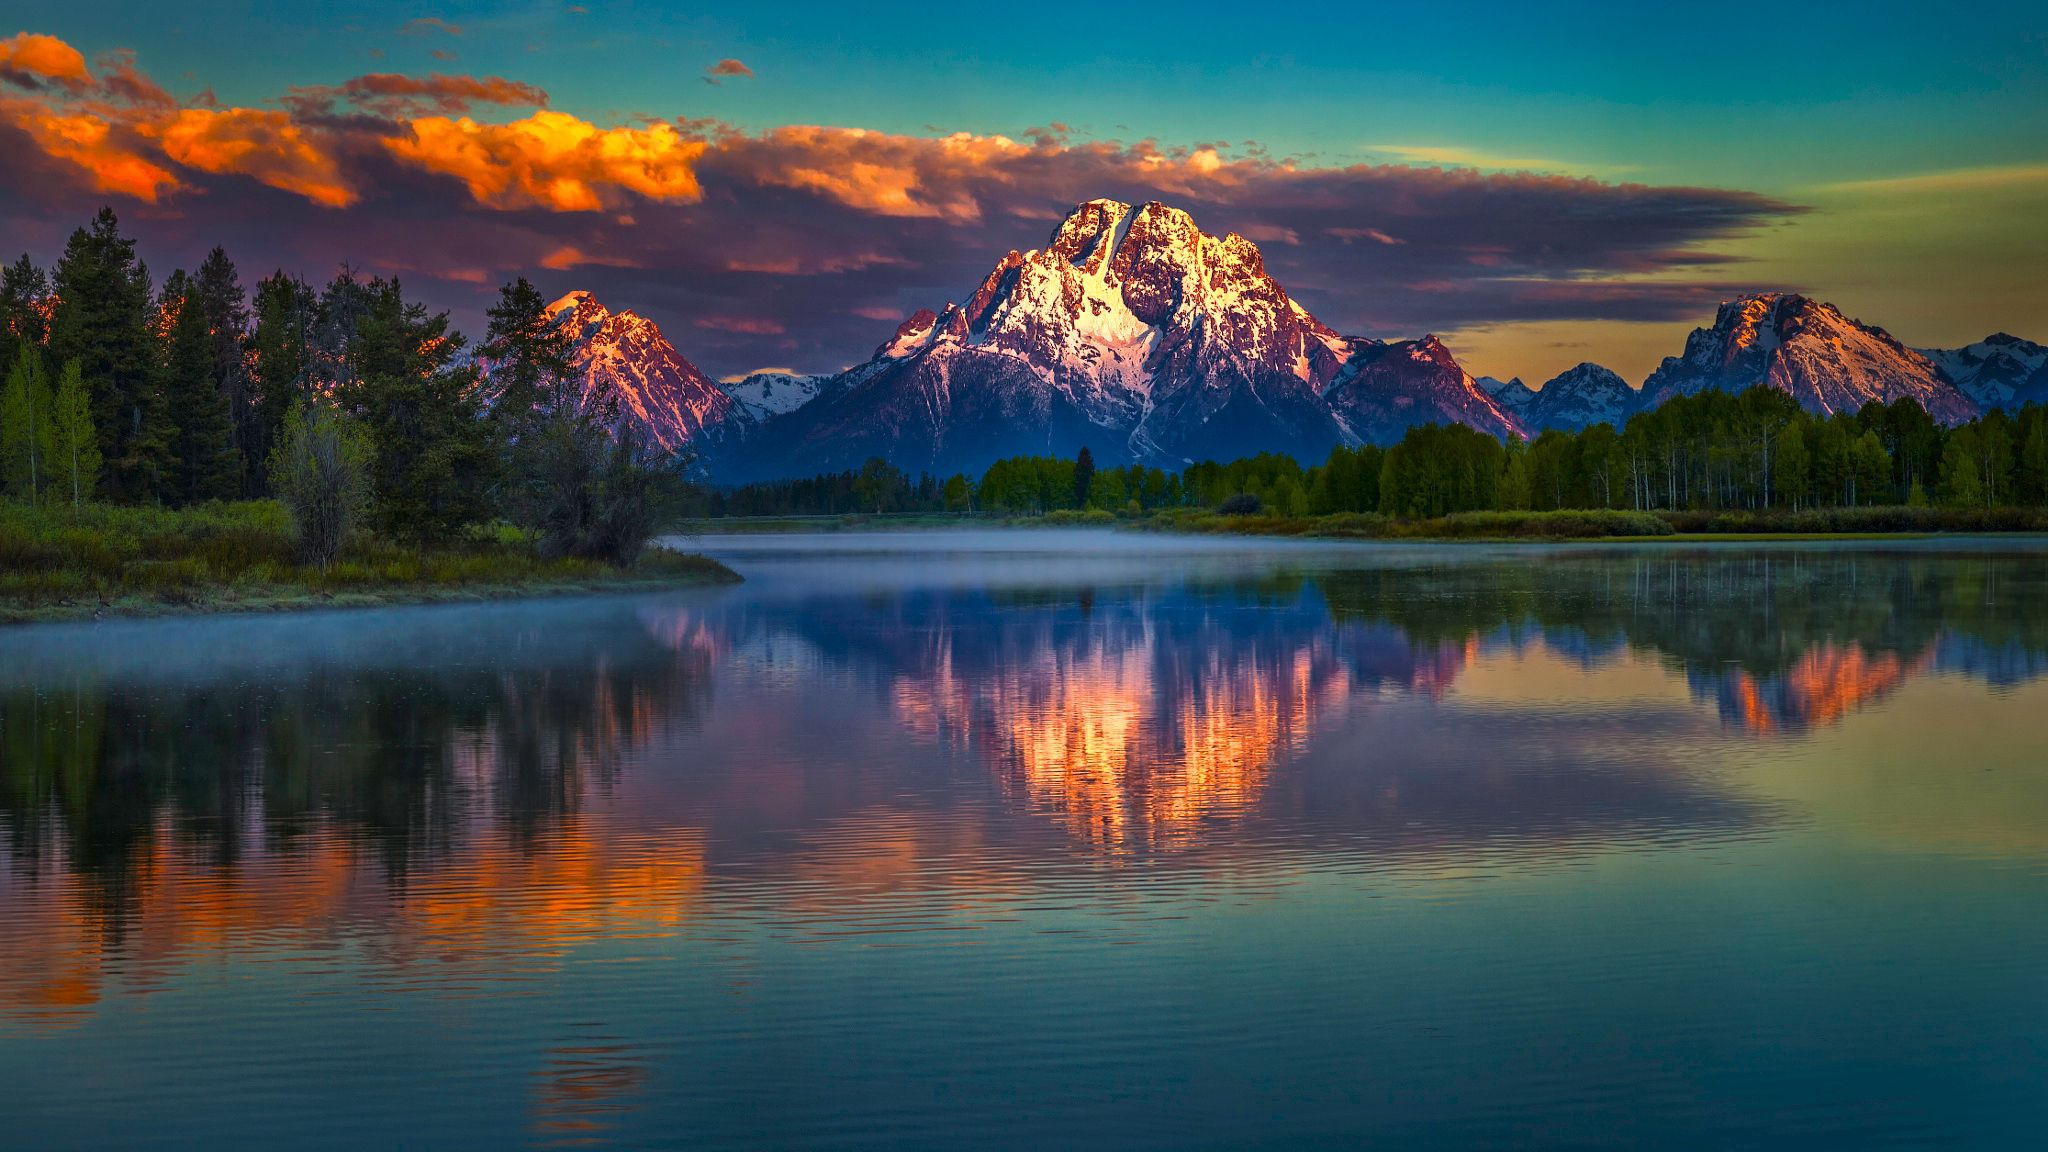 91551 download wallpaper Mountains, Nature, Sky, Lake, Reflection screensavers and pictures for free